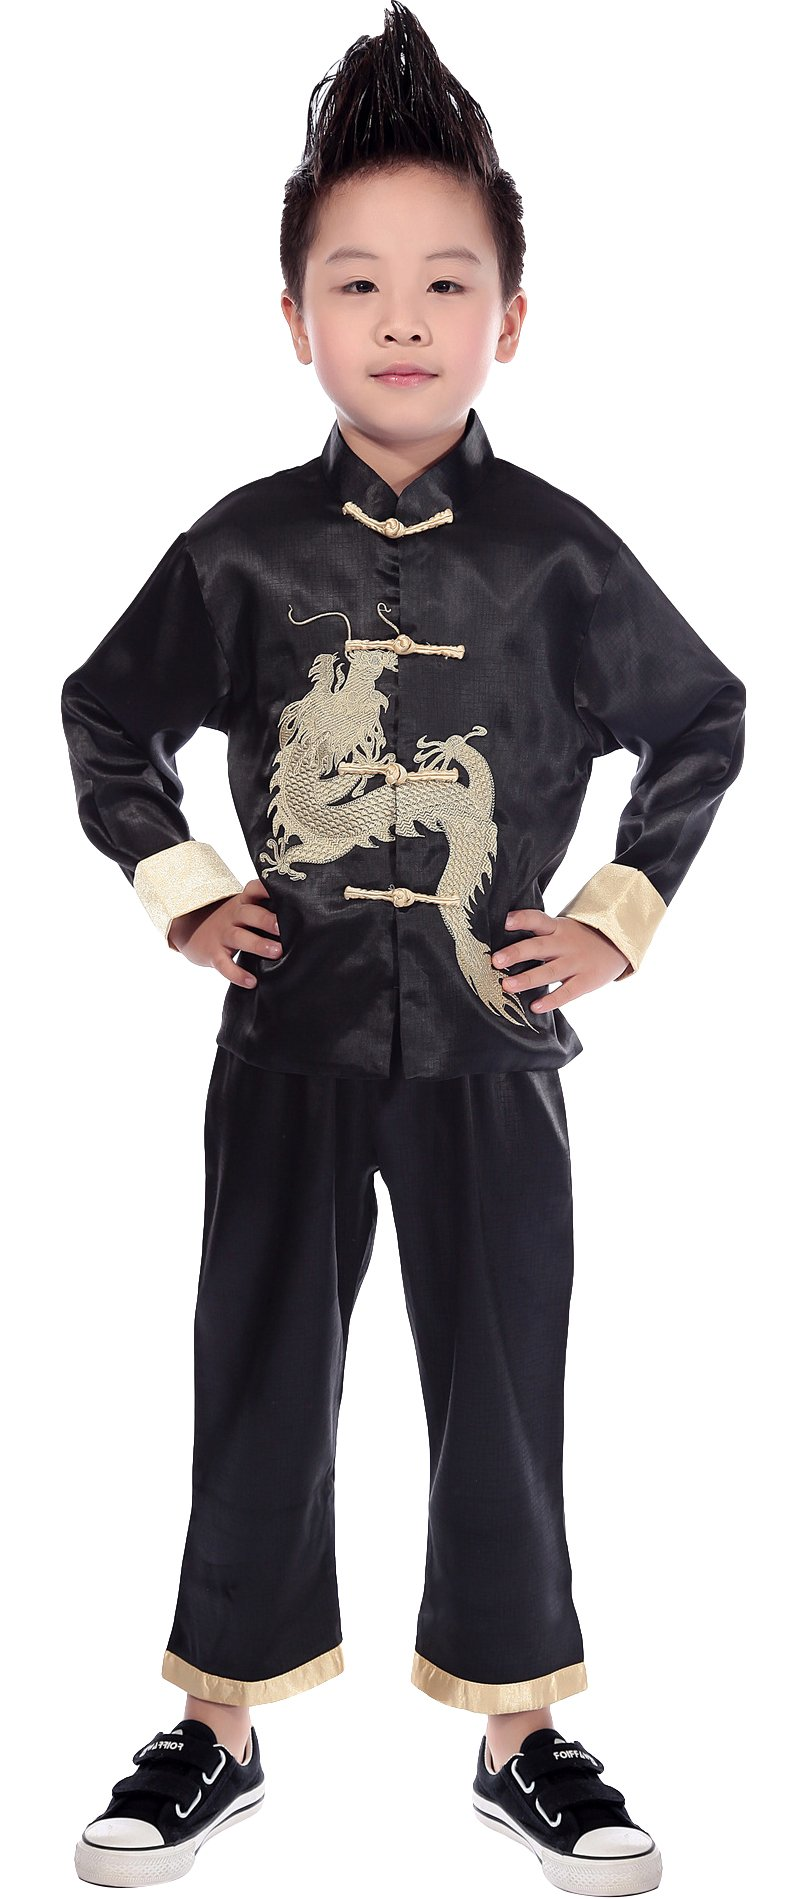 AvaCostume Traditional Chinese Boy Dragon Kung Fu Outfit Tang Costume, Black, 16